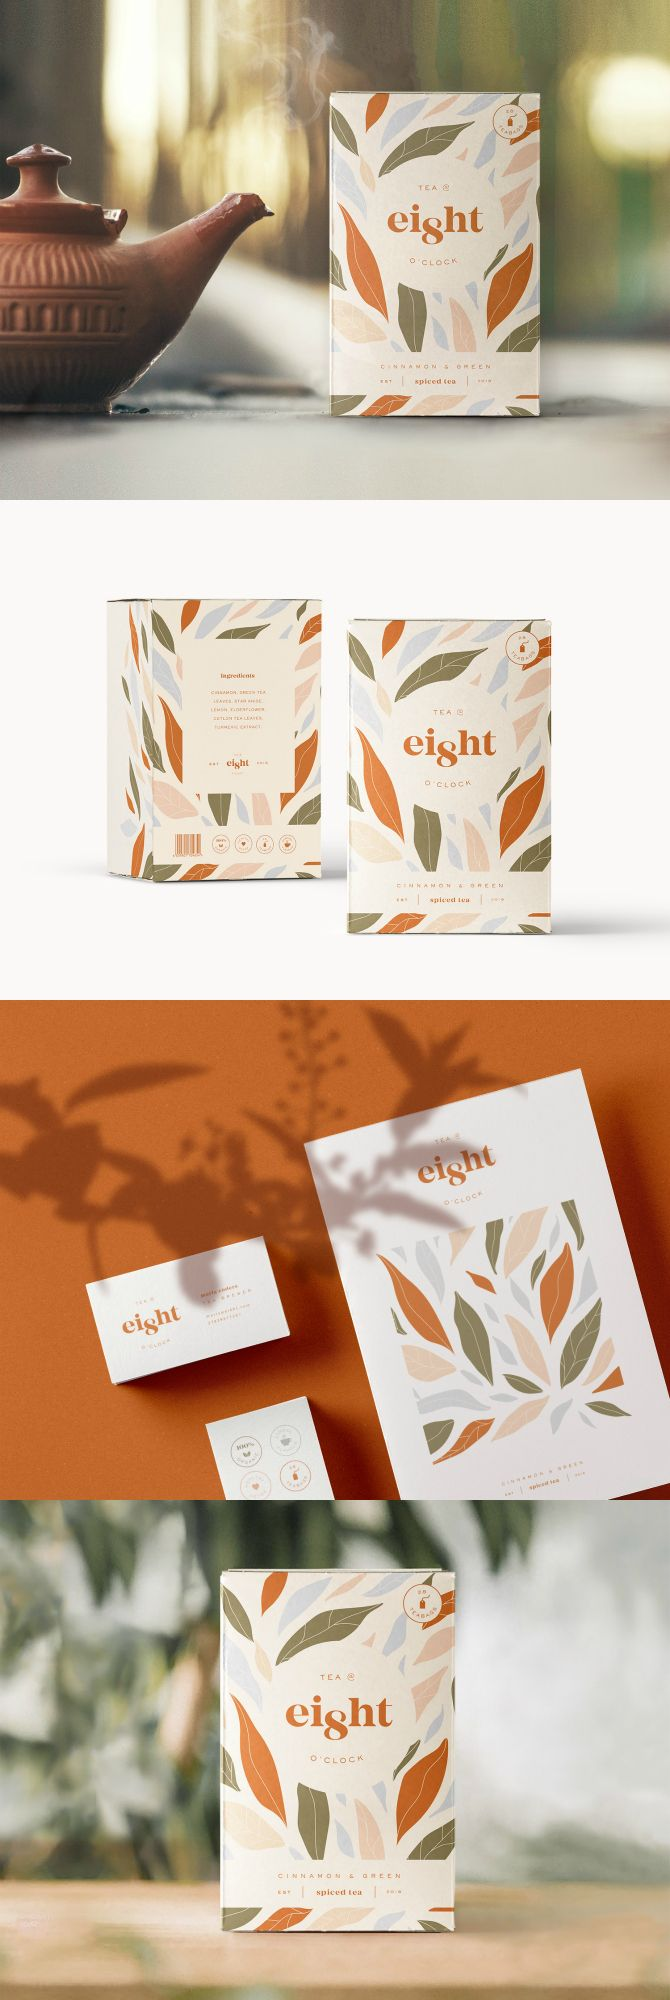 Organic Spiced Tea Branding and Packaging